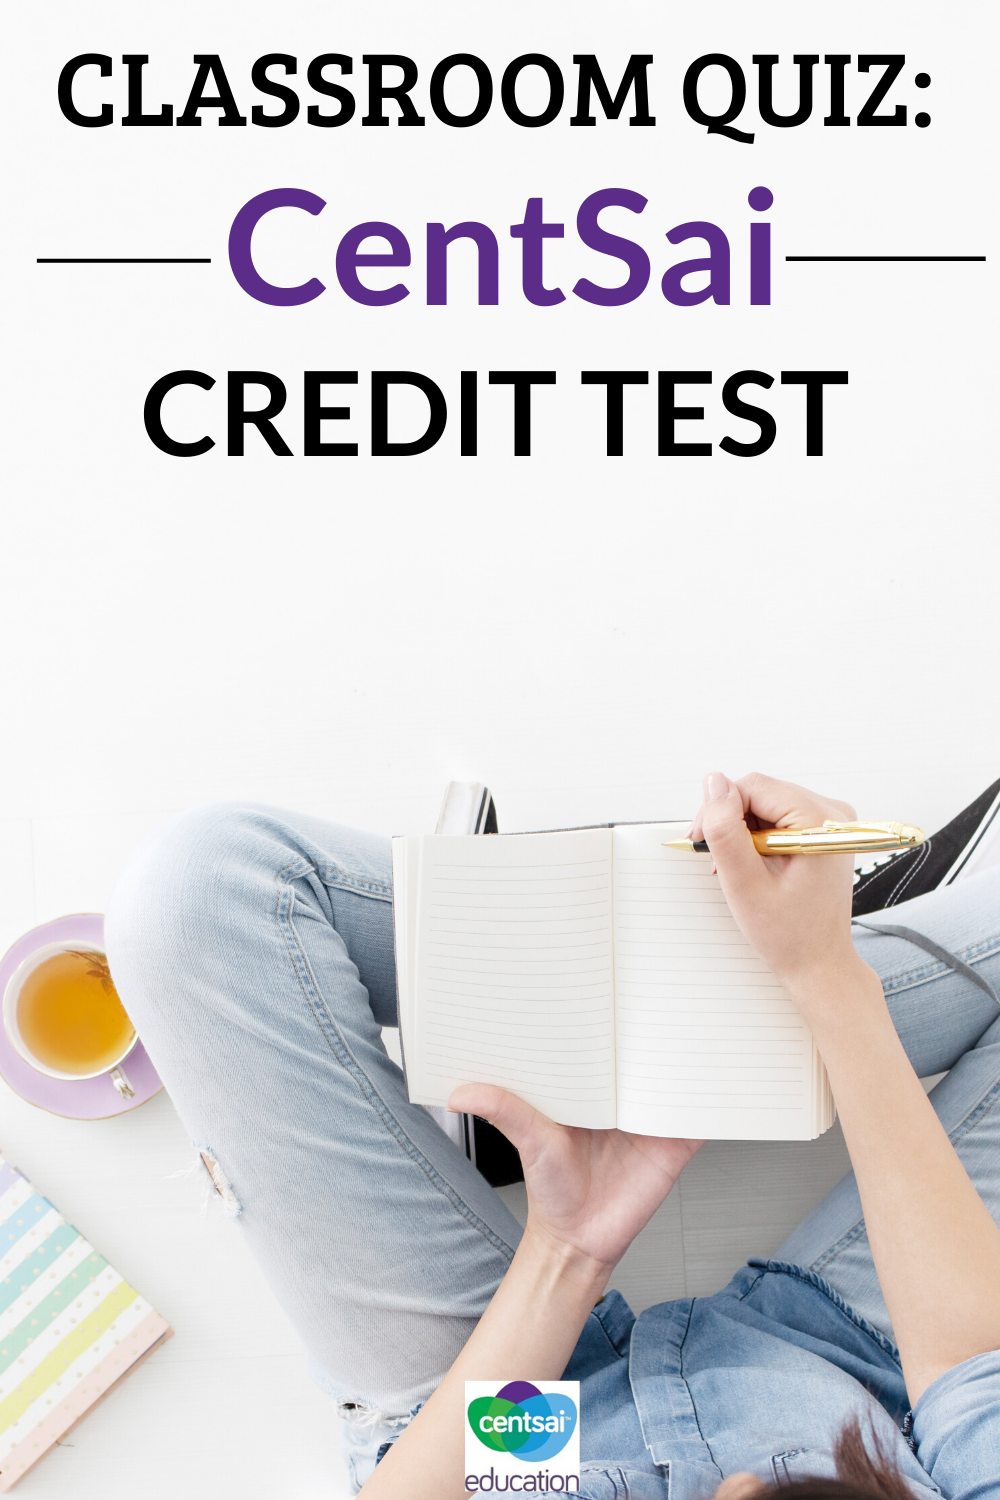 Have your students take this quiz from CentSai on credit — the results may surprise you. #quiz #CentSaiEducation #credicard #improvecreditscore #creditscore